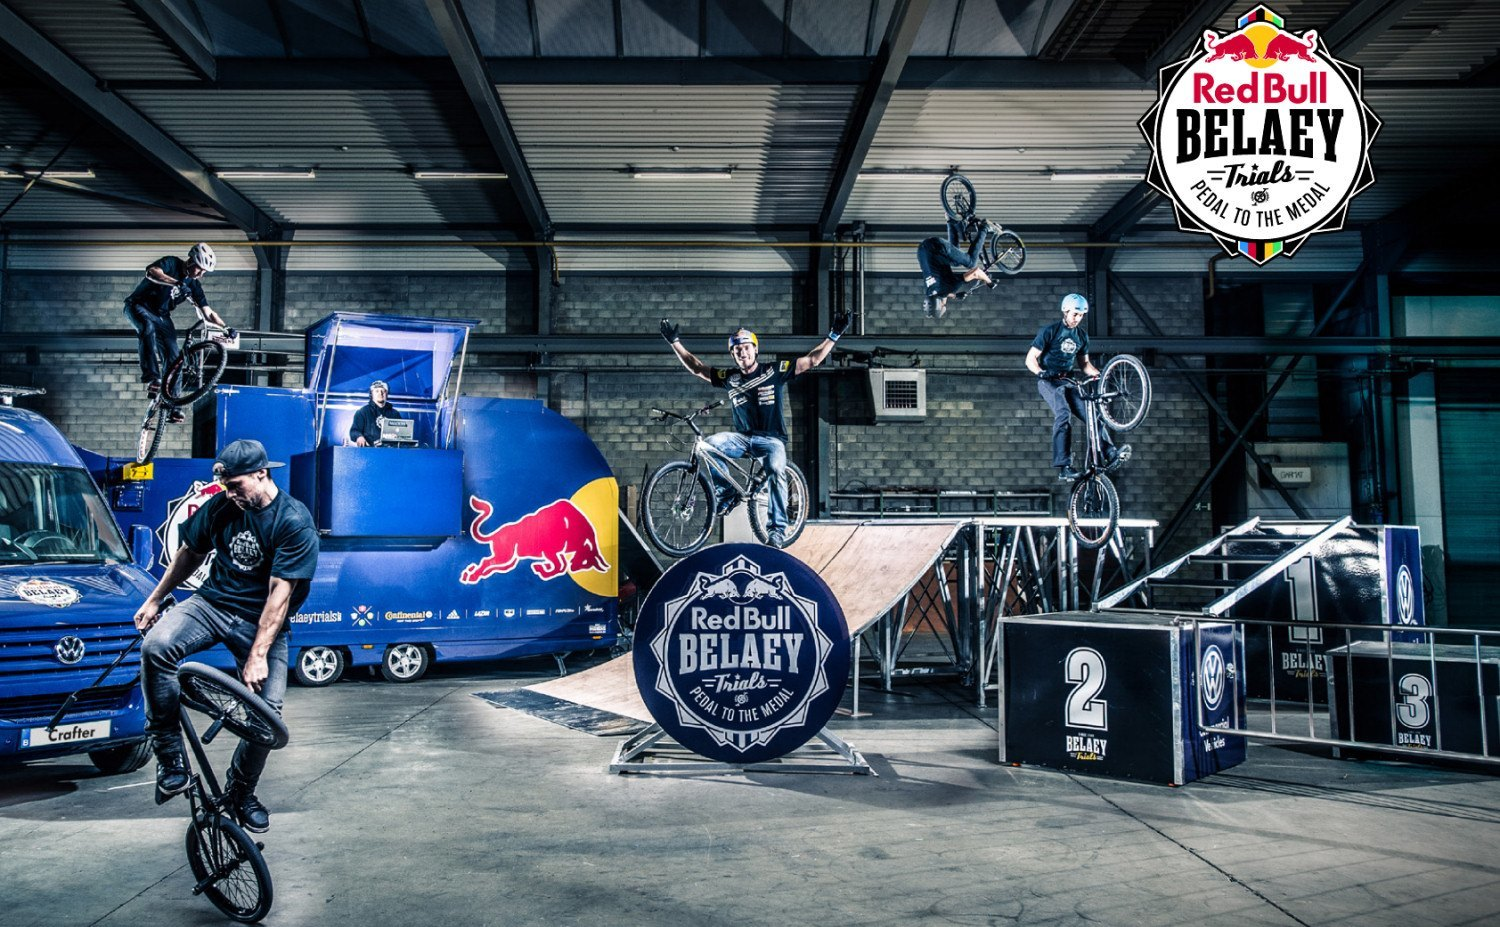 Red Bull Belaey Trials Pedal to the Medal